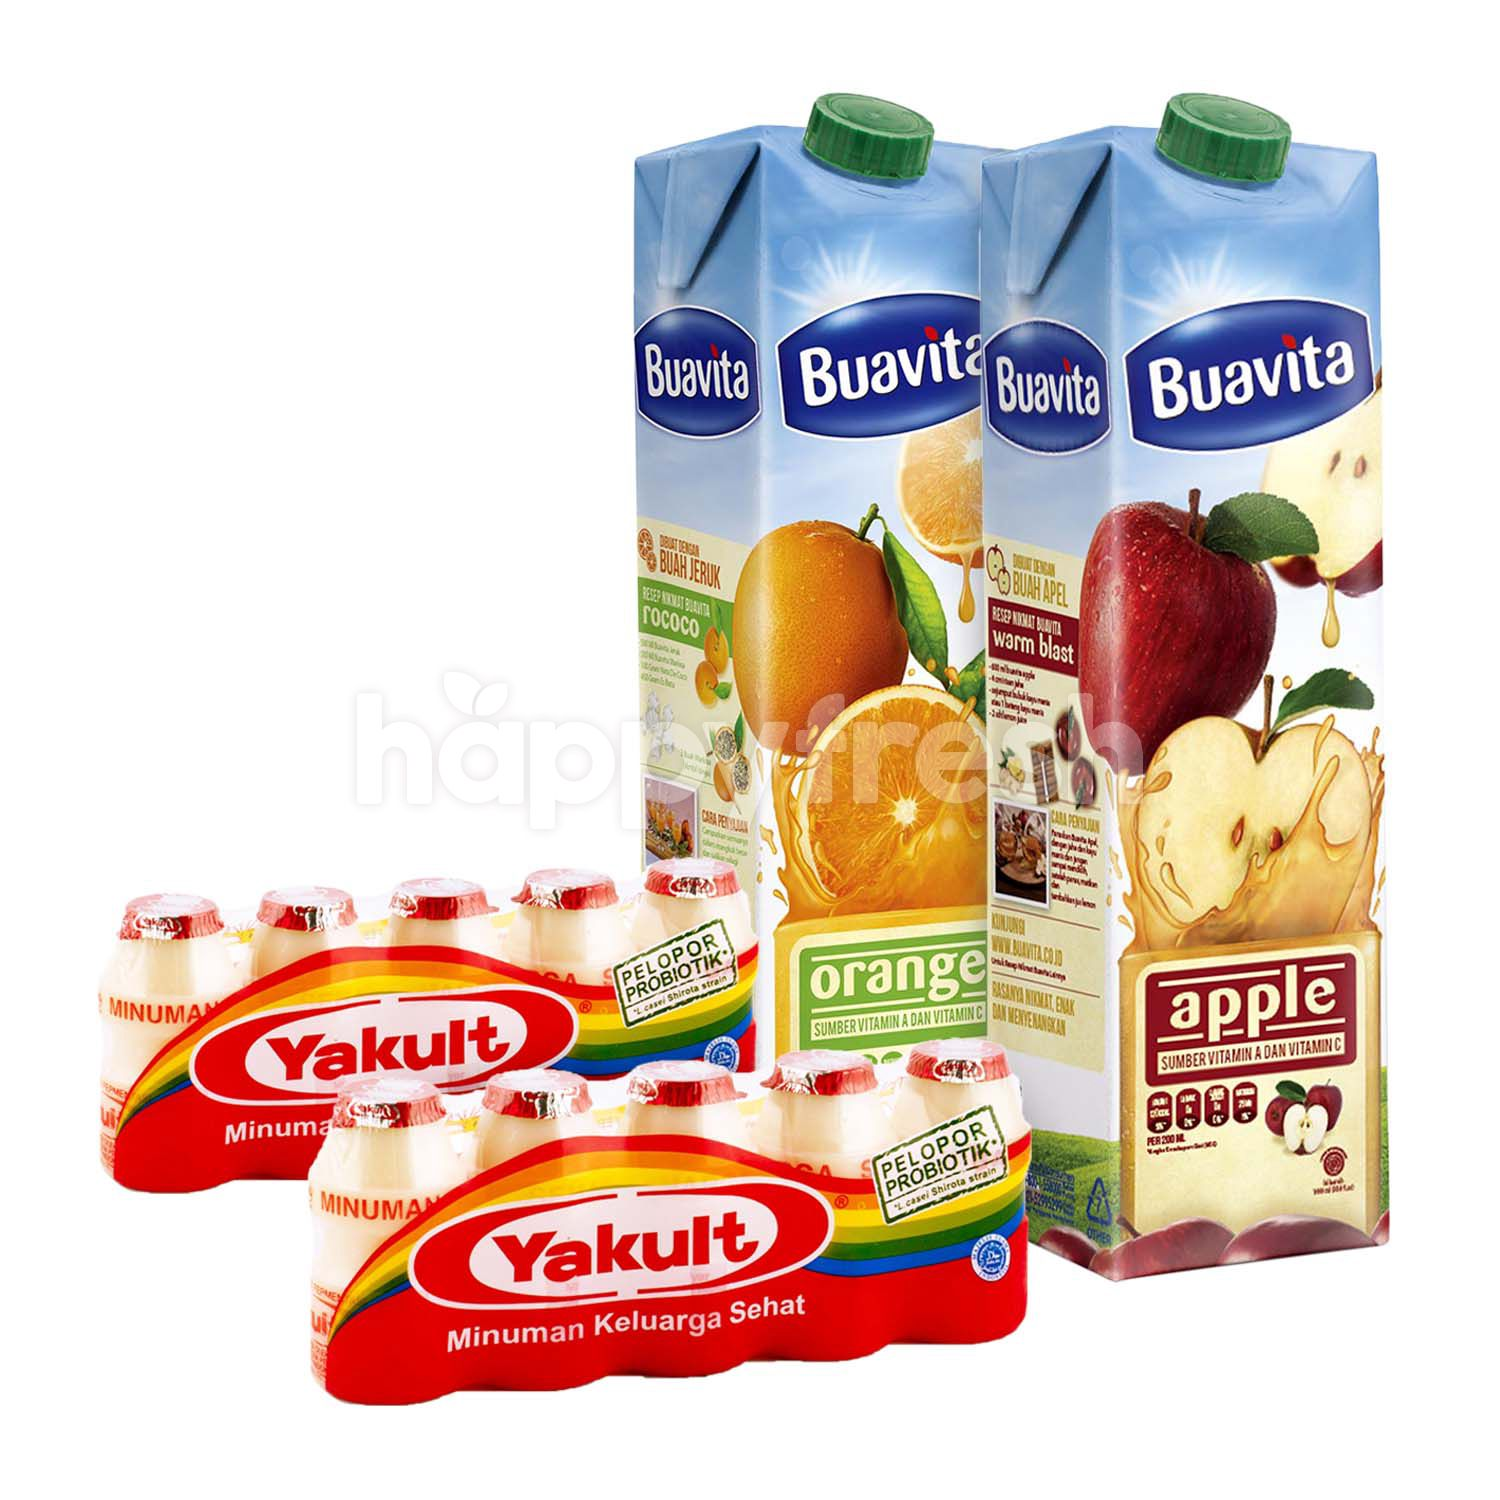 Buavita Yakult Package Happyfresh